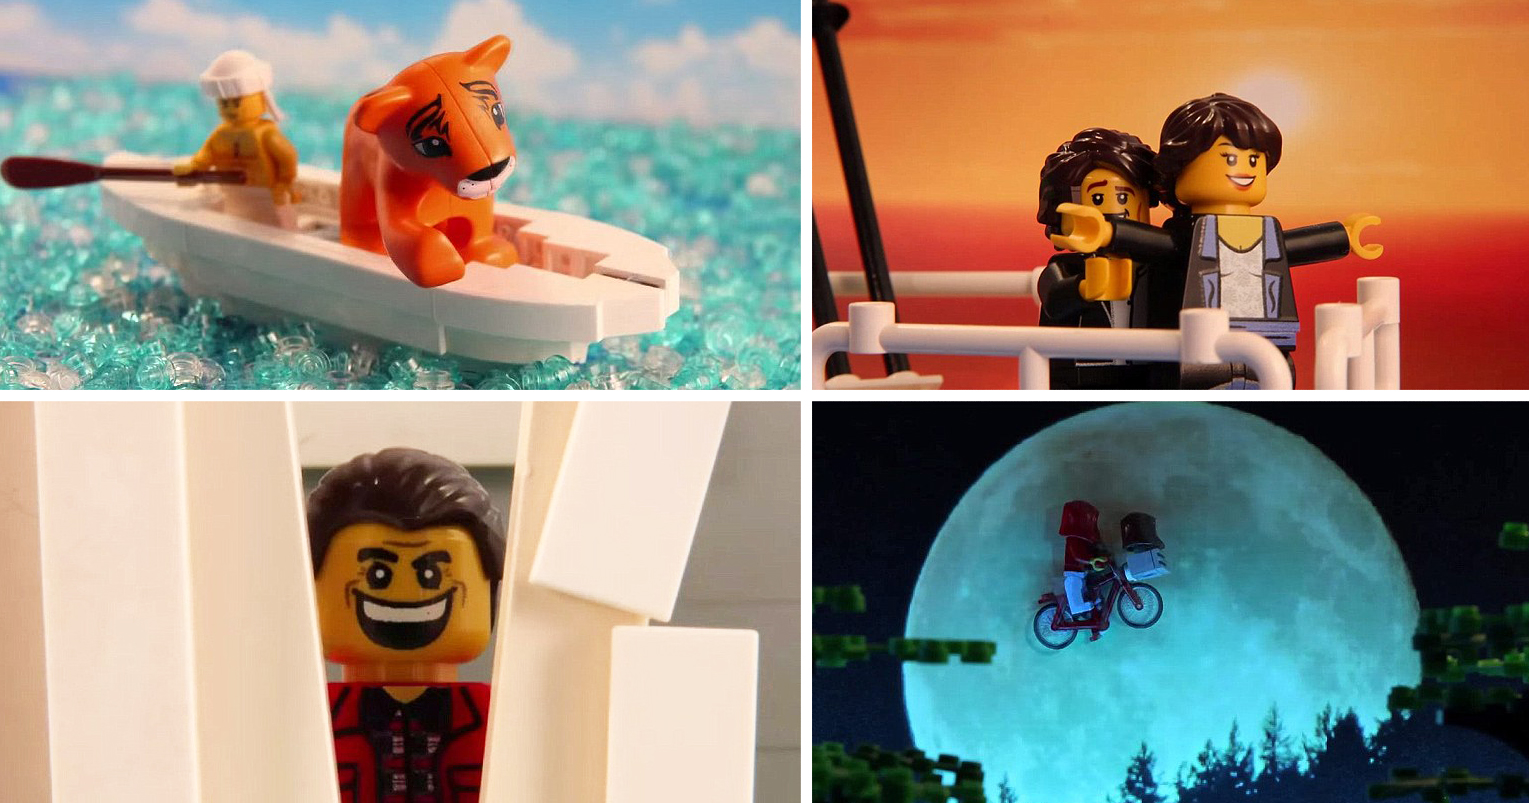 teen filmmaker recreates iconic movie scenes with lego in